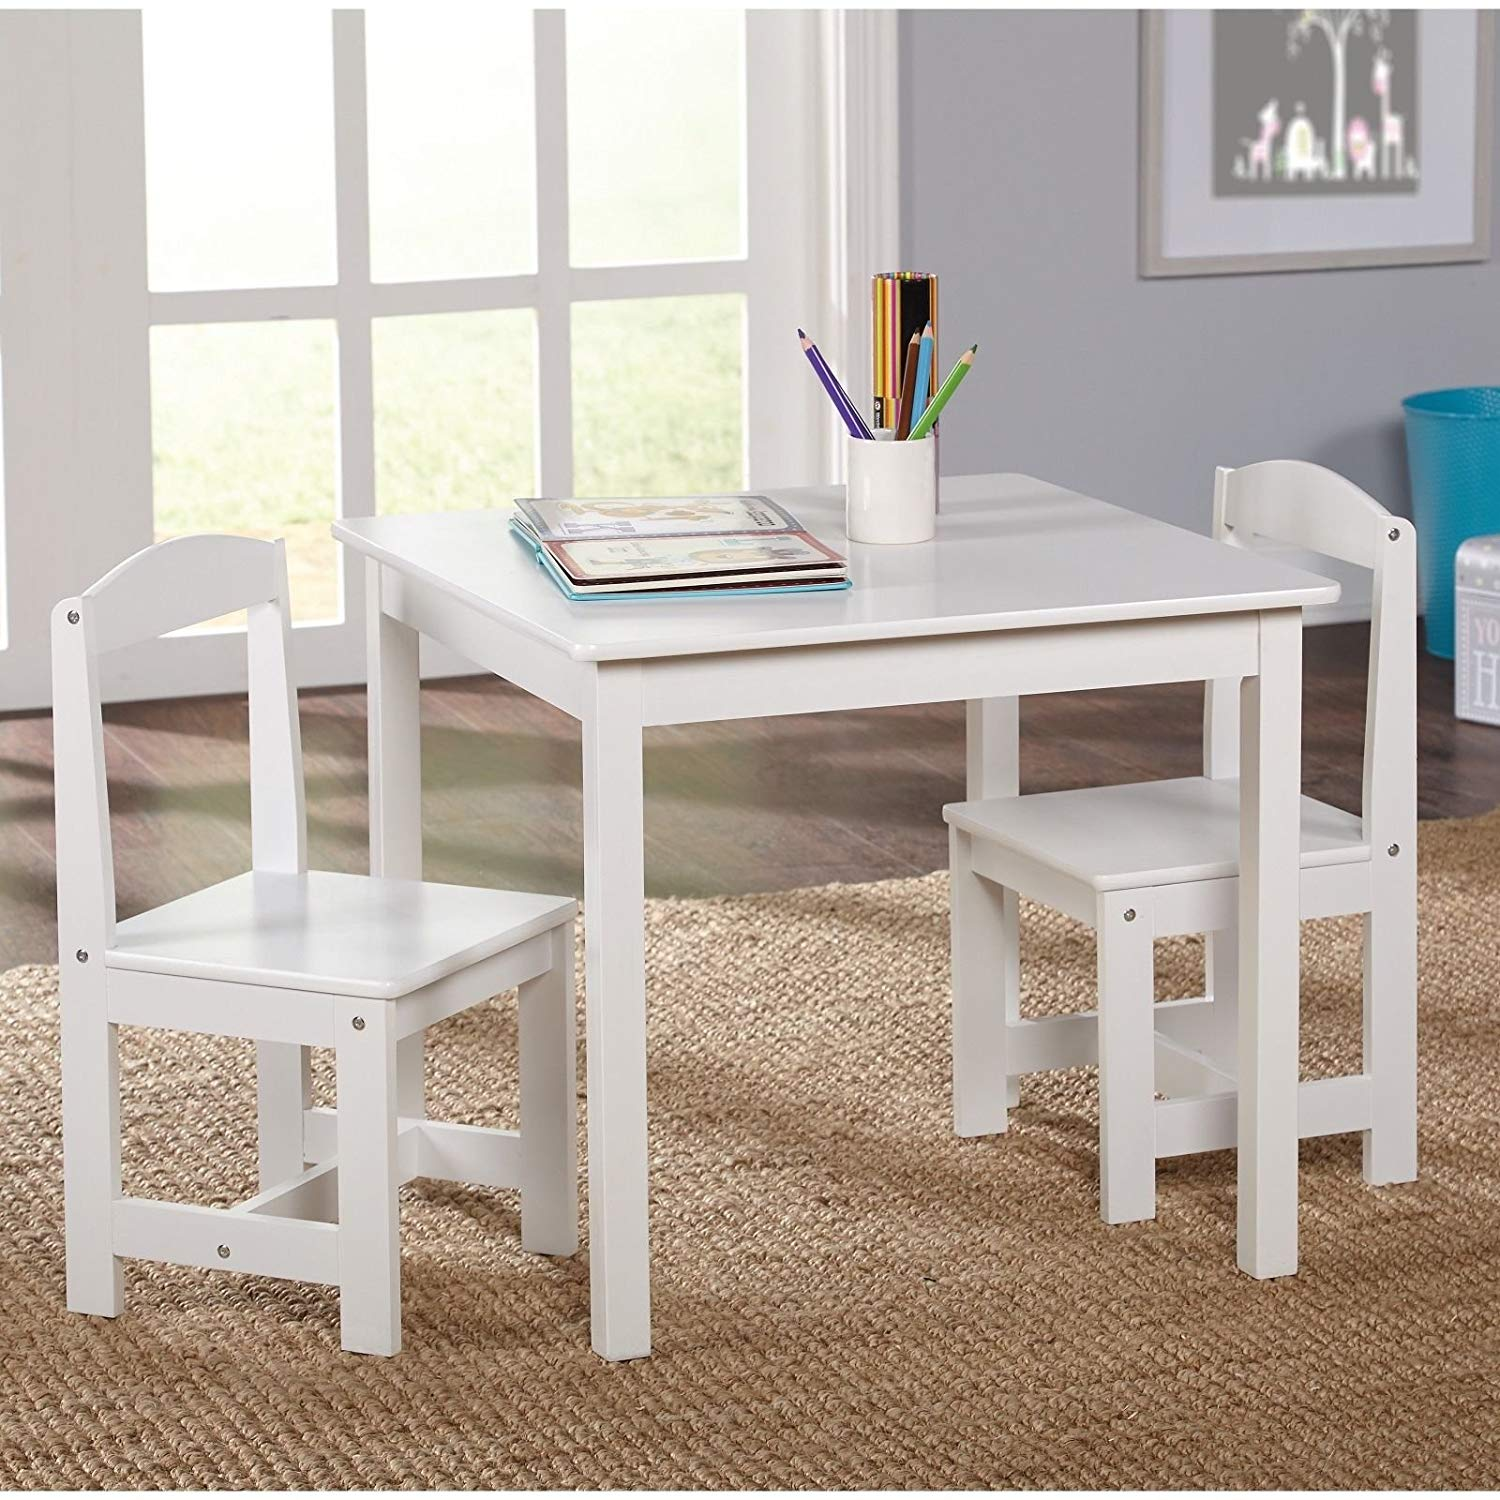 Cheap Kids Table Chair Set Find Kids Table Chair Set Deals On Line